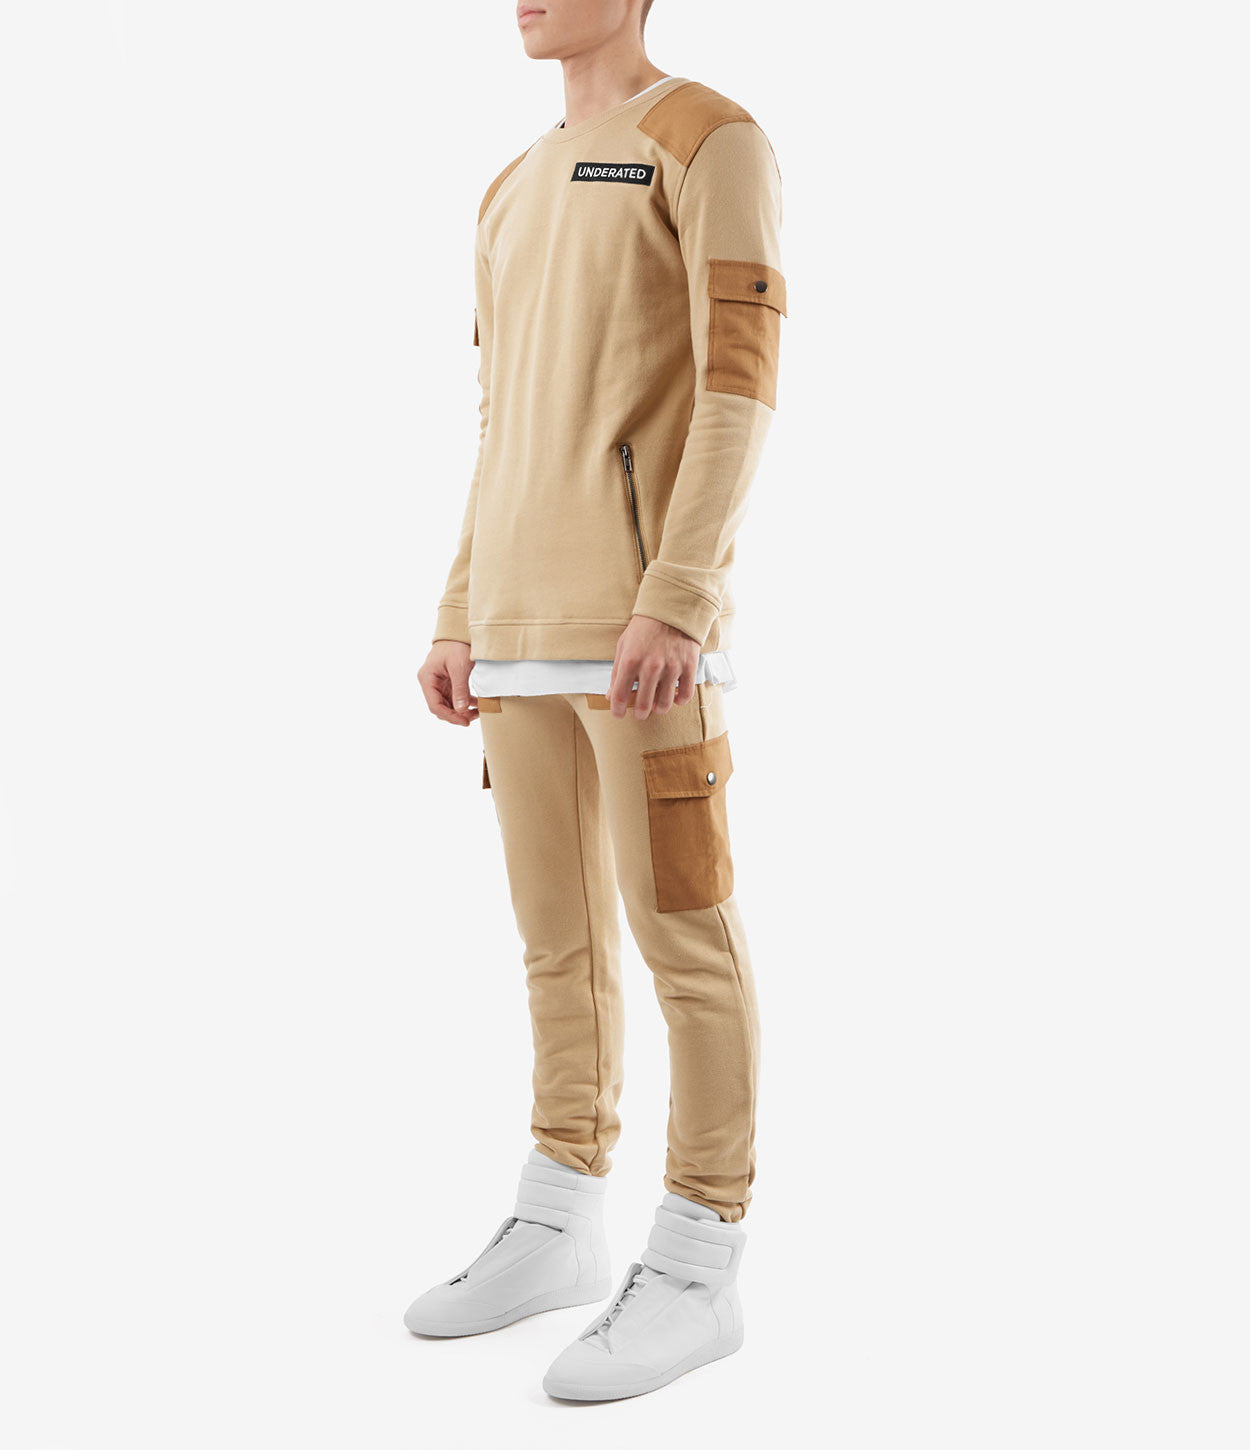 SW376 Utility Cargo Sweatshirt - Beige - underated london - underatedco - 3